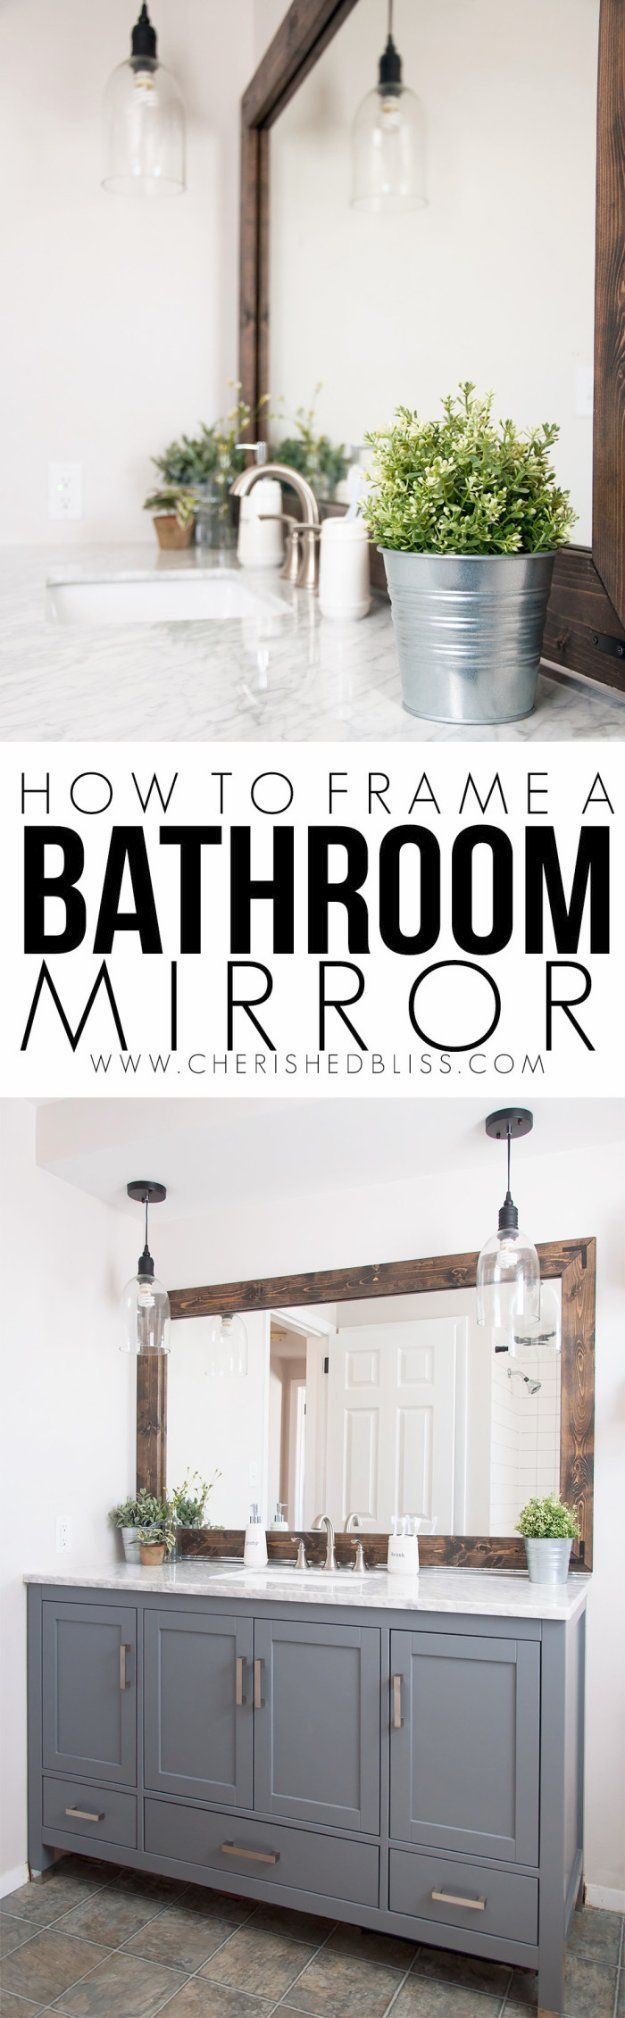 Framed Art Bathroom 17 Best Ideas About Bathroom Wall Art On Pinterest Bathroom Wall